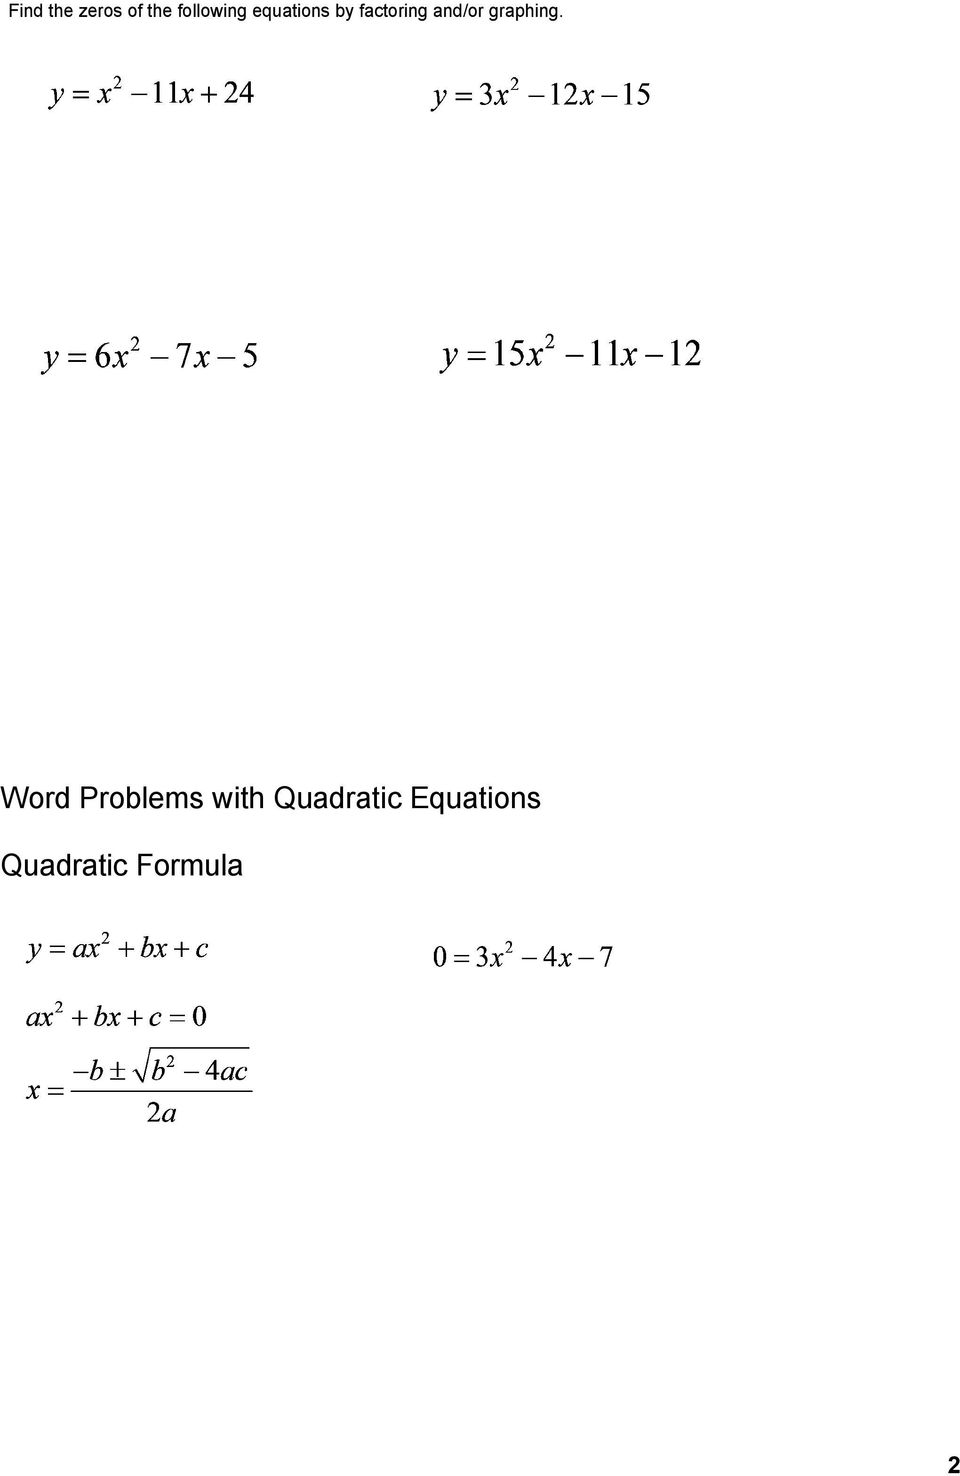 worksheet Linear Equation Word Problems Worksheet quadratic equation word problems worksheet talkchannels many result in equations that need to be